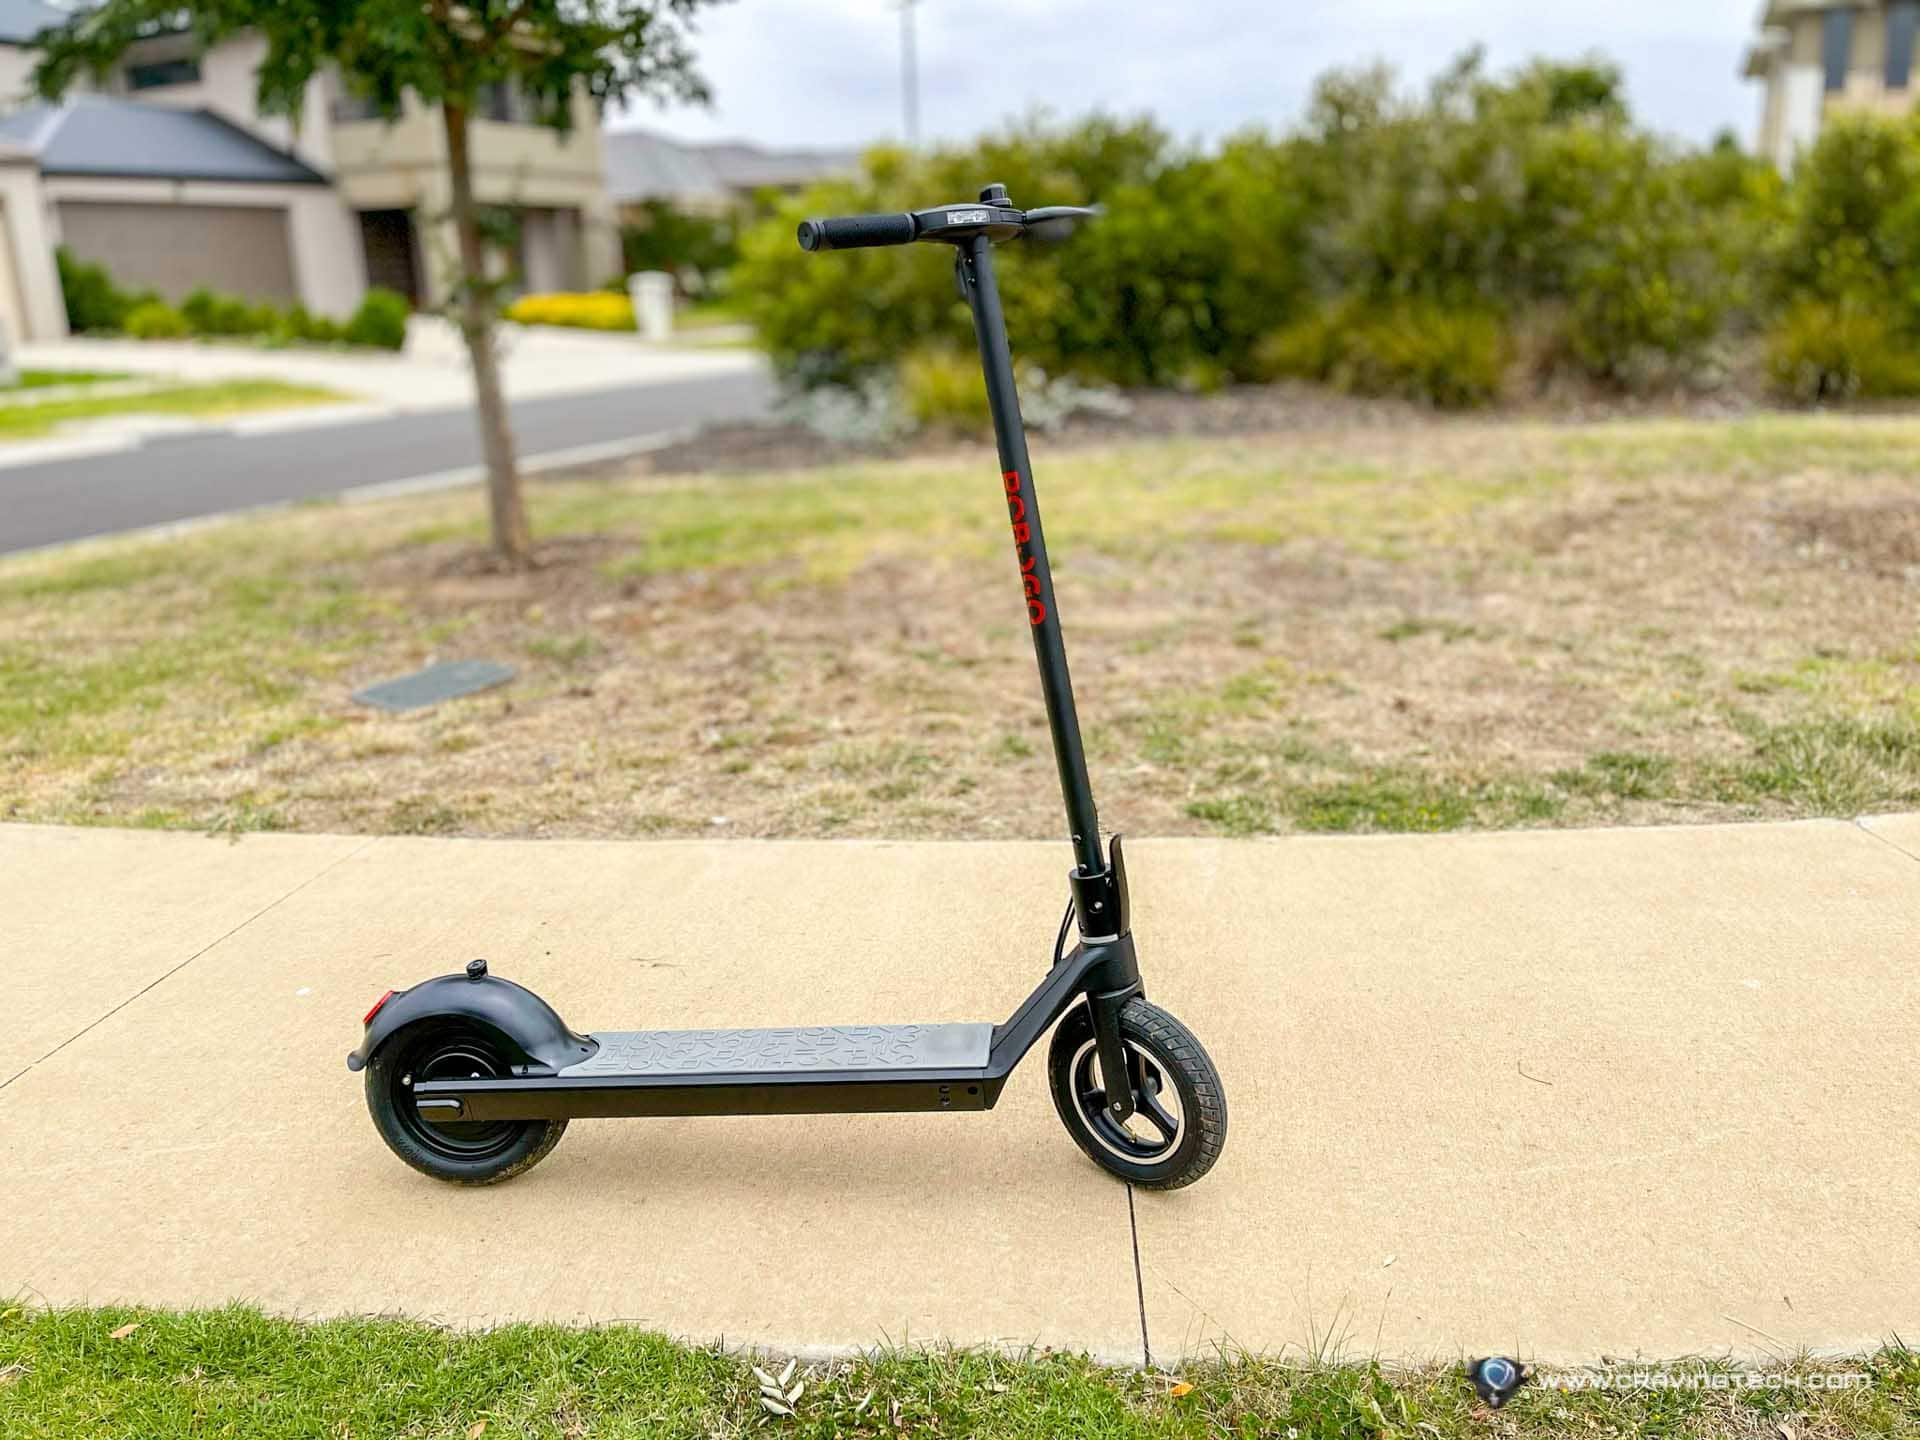 This electric scooter drives like a Tesla car – ROBOGO Rapid Review